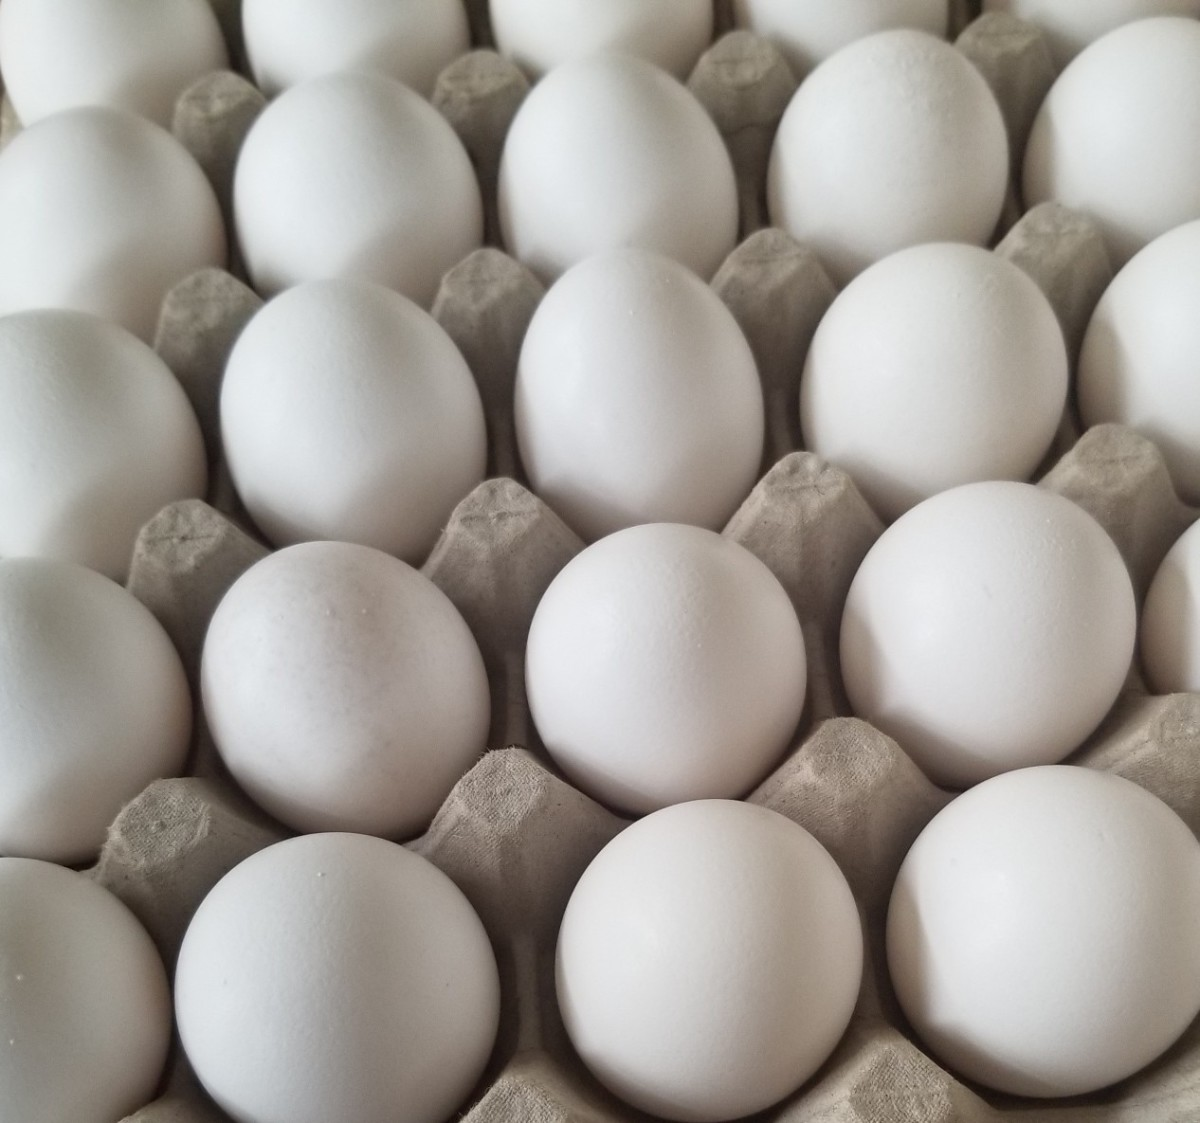 Eggs are versatile and cheap. Adding them to  lunch or dinner menu may be a profitable decision.